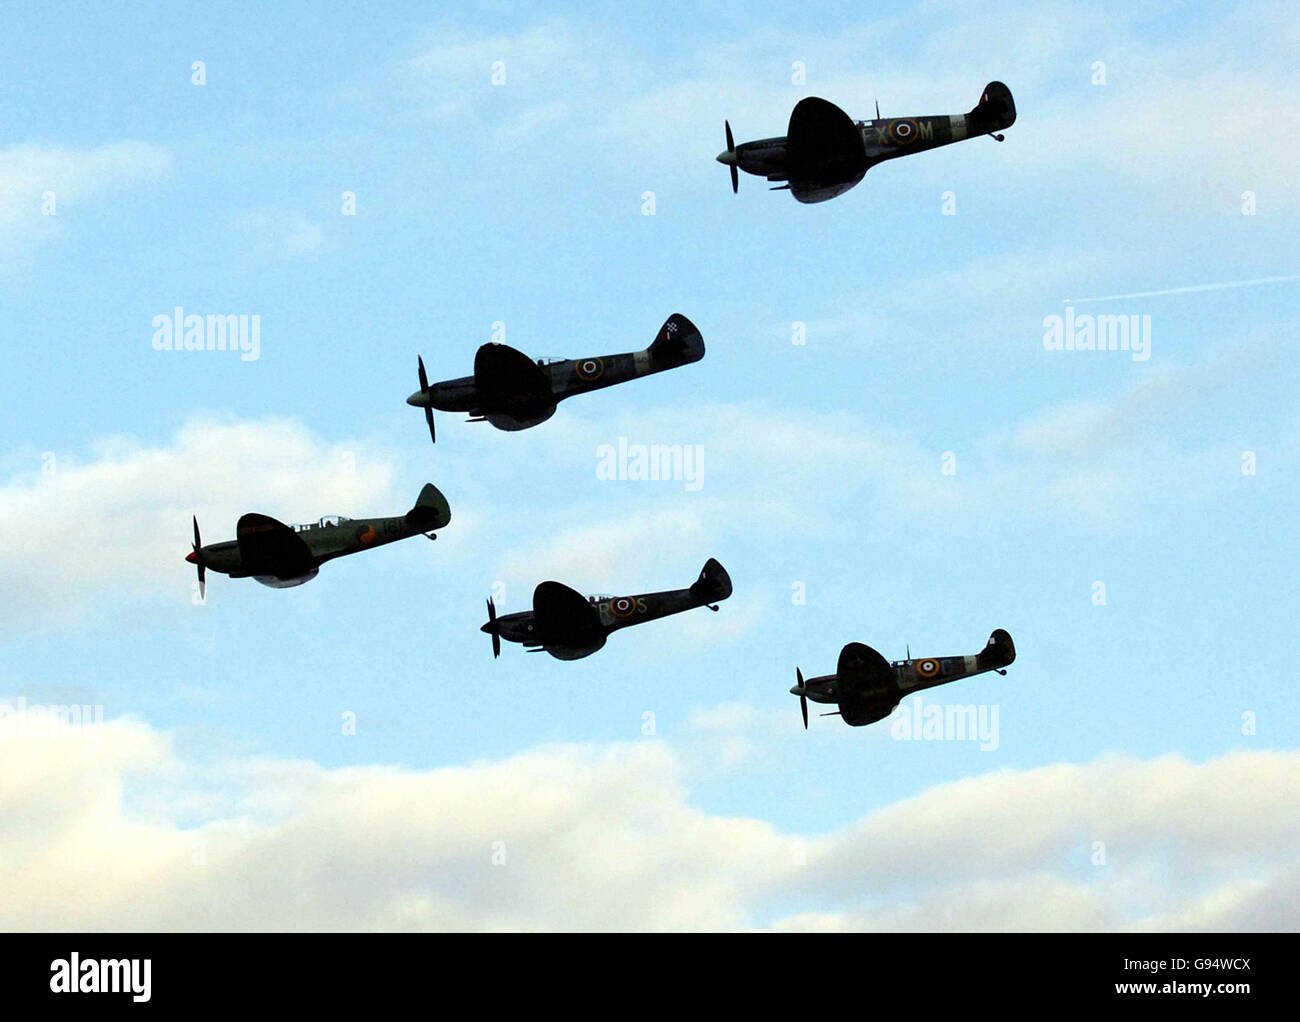 Spitfires - Southampton Airport - Stock Image